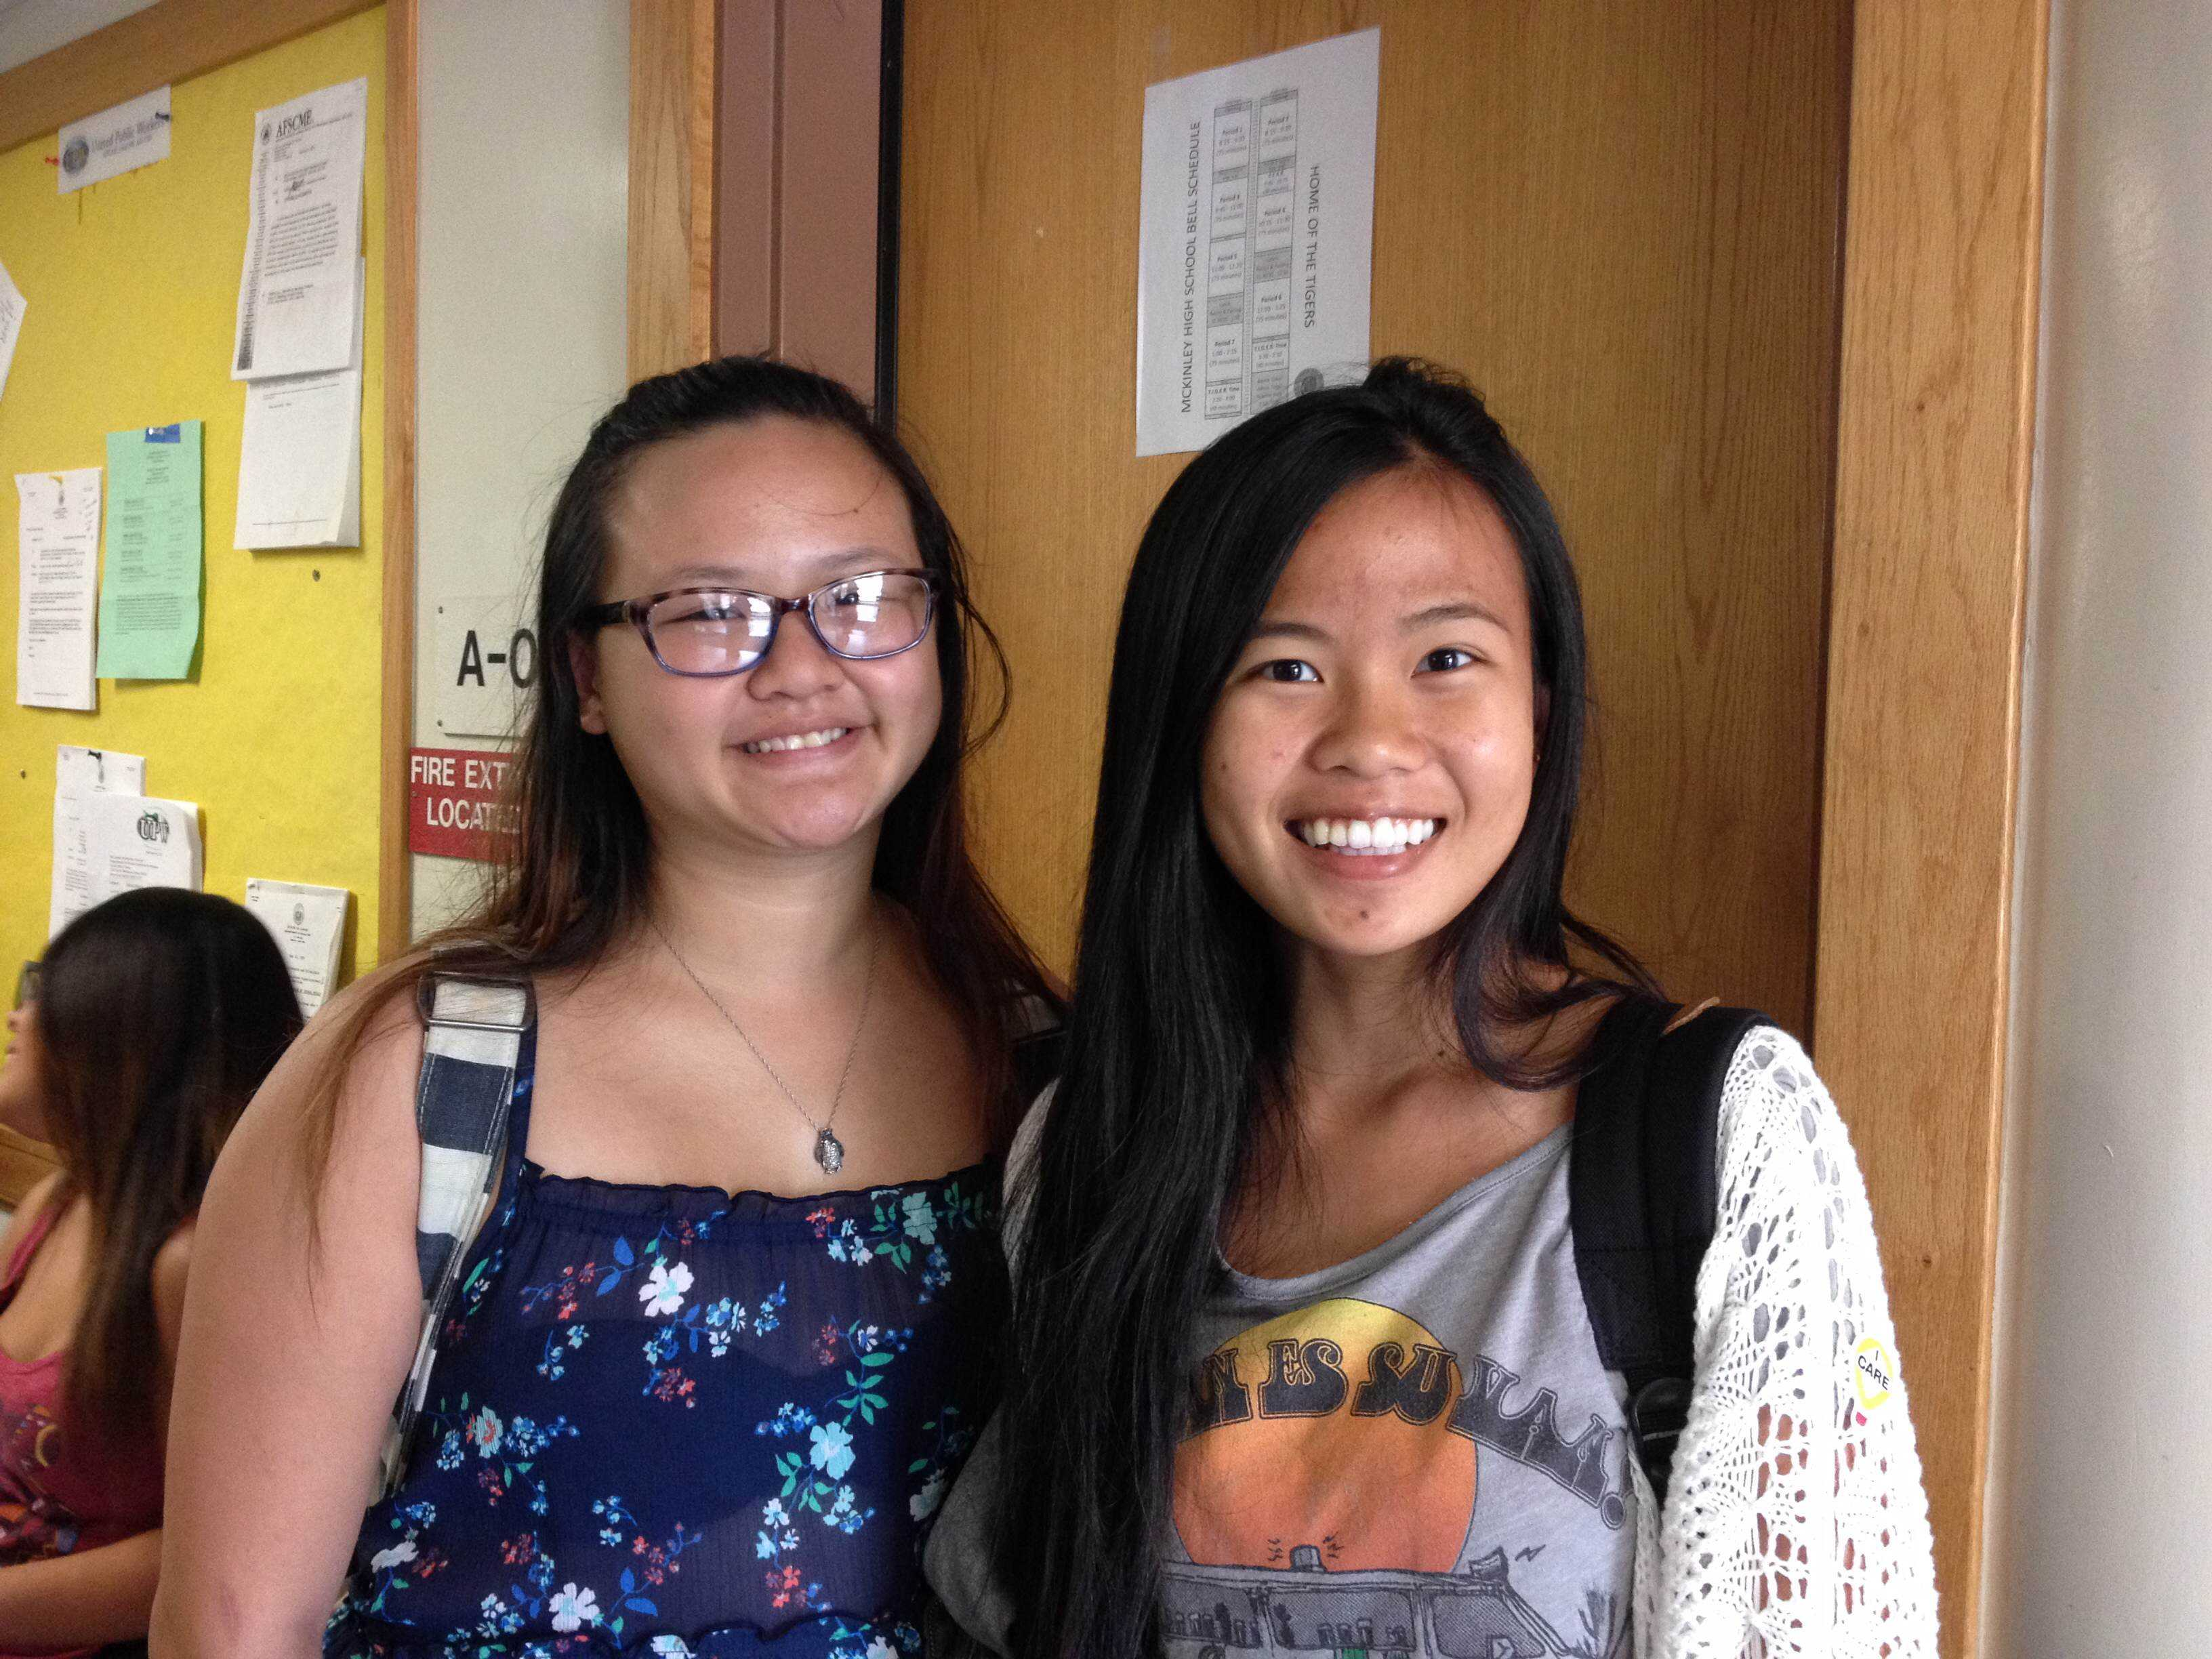 Skylynne Ly and Jin Ling Yan share their reasons for wanting to speak at Commencement. Ly had priorities and changed her mind about giving a speech. Yan was chosen as one of this year's speakers.